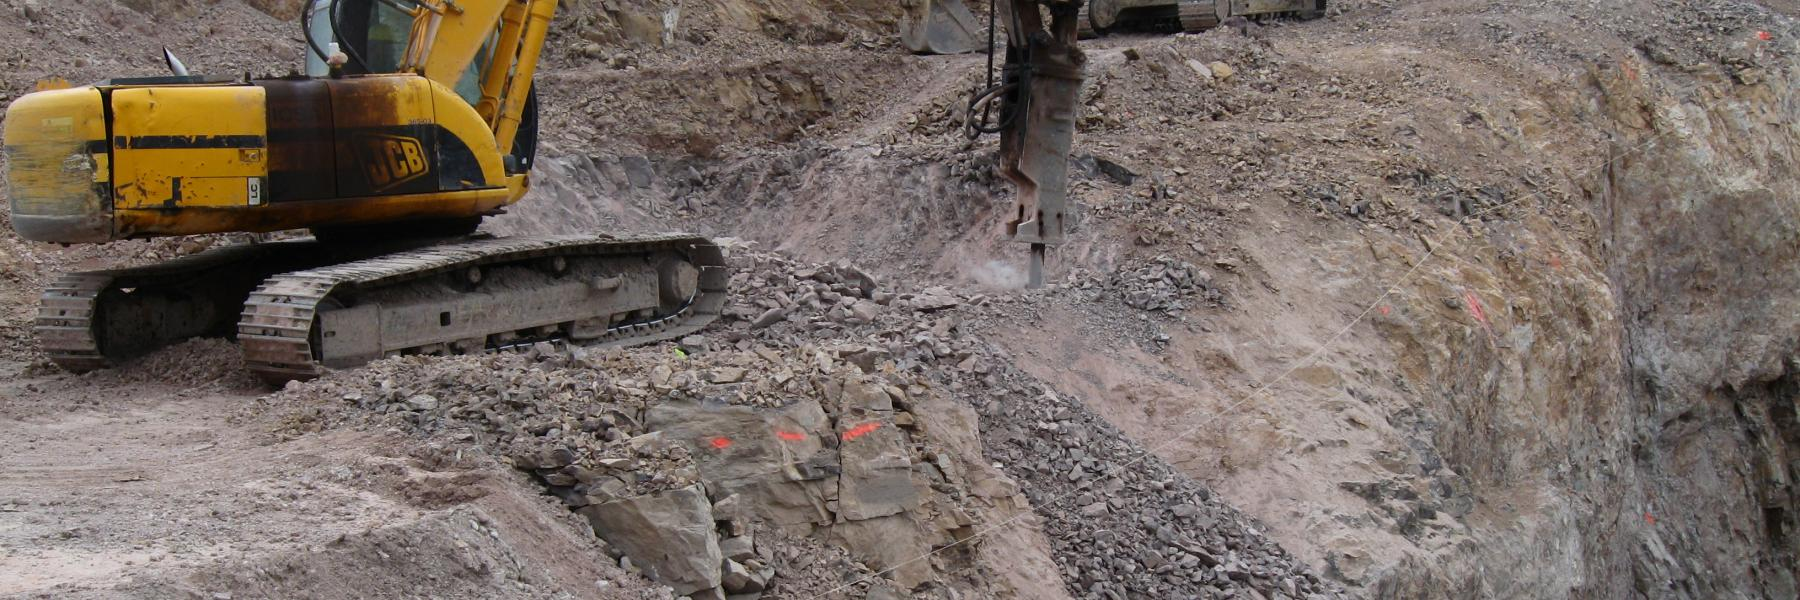 construction mining project